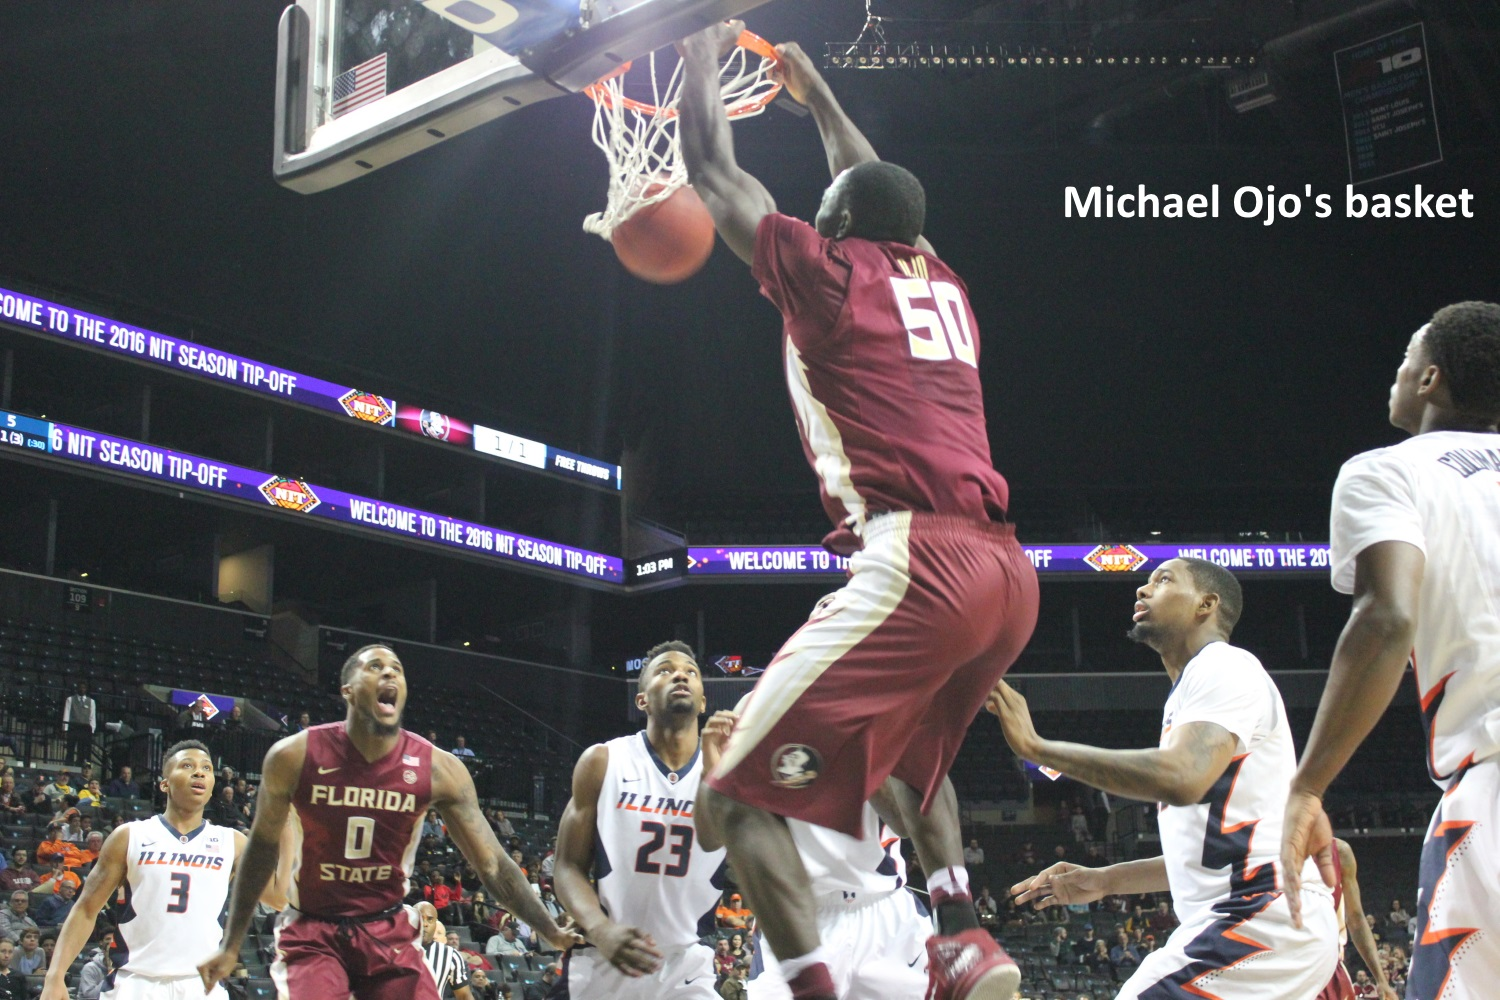 michael-ojo-dunks